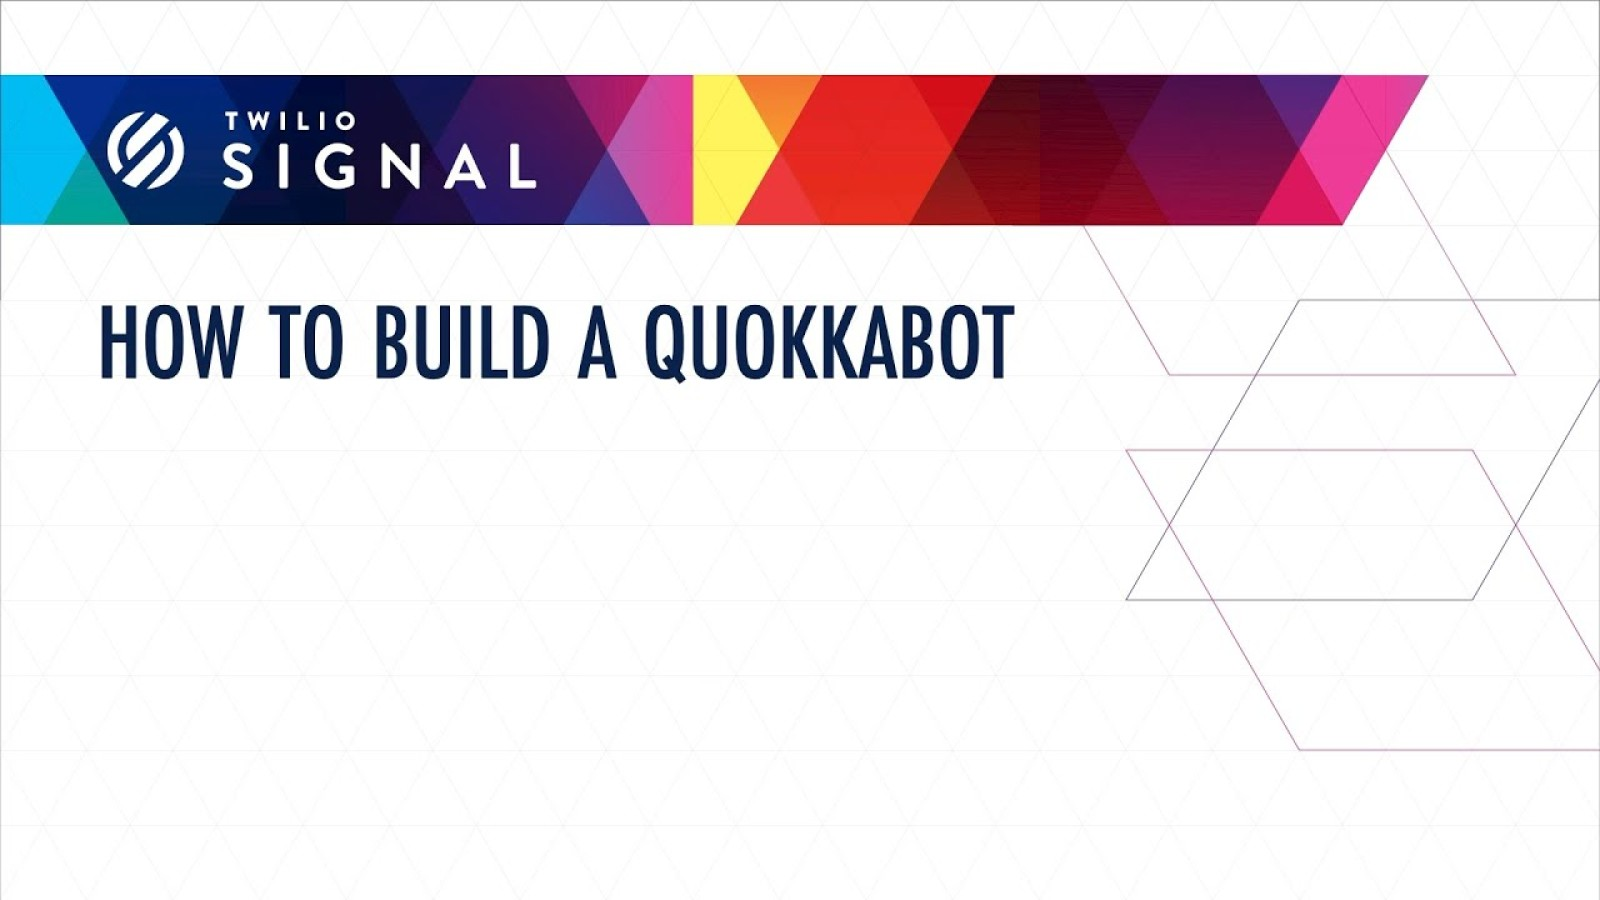 How to Build a Quokkabot